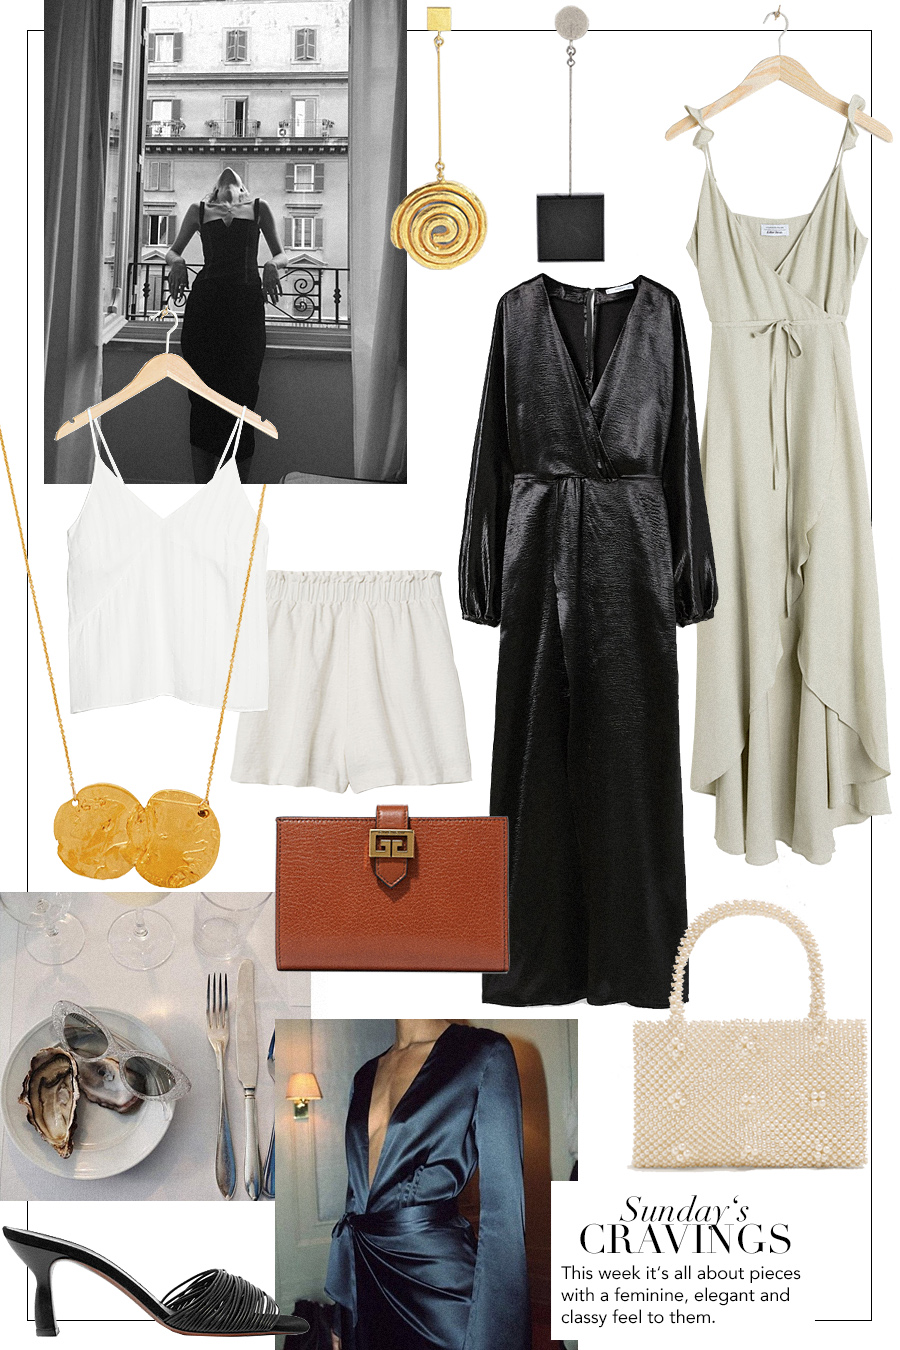 Jacquemus Le Carre earrings, Alighieri Dante and the Lion necklace, Givenchy purse, Neous Mules, pearl bag, satin dress, shorts, camisole, wrap dress